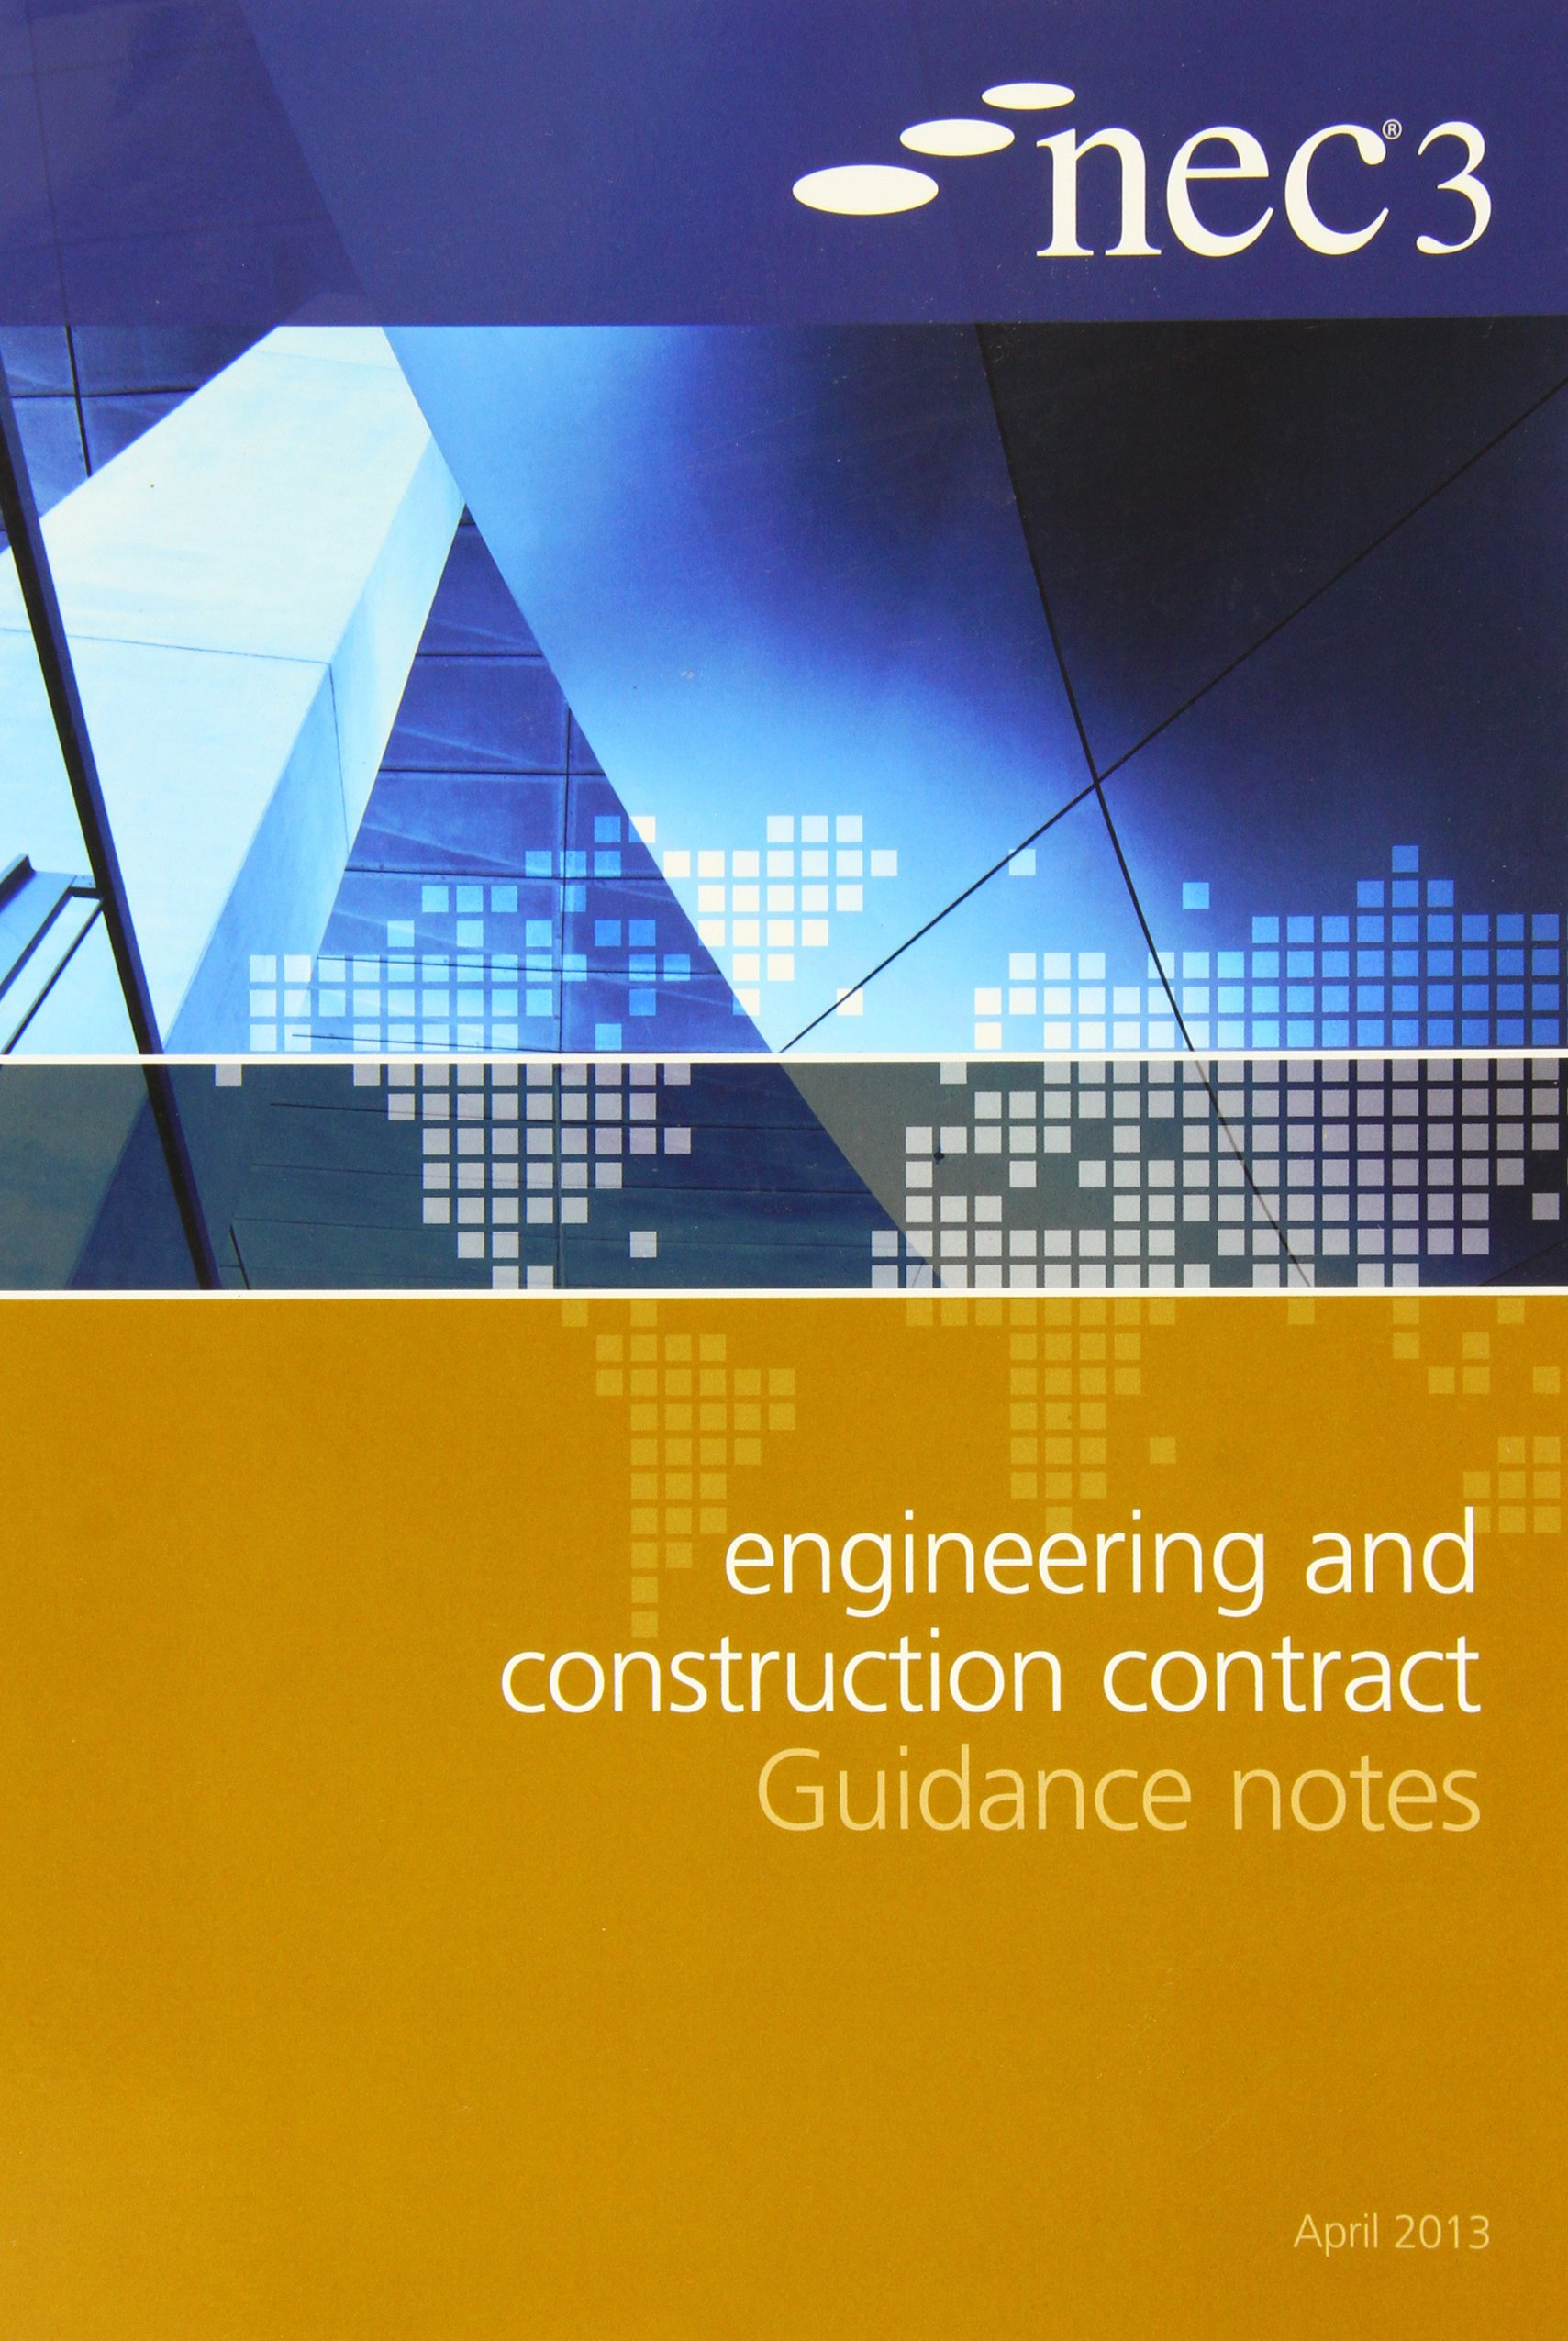 Contract pdf nec3 engineering construction and